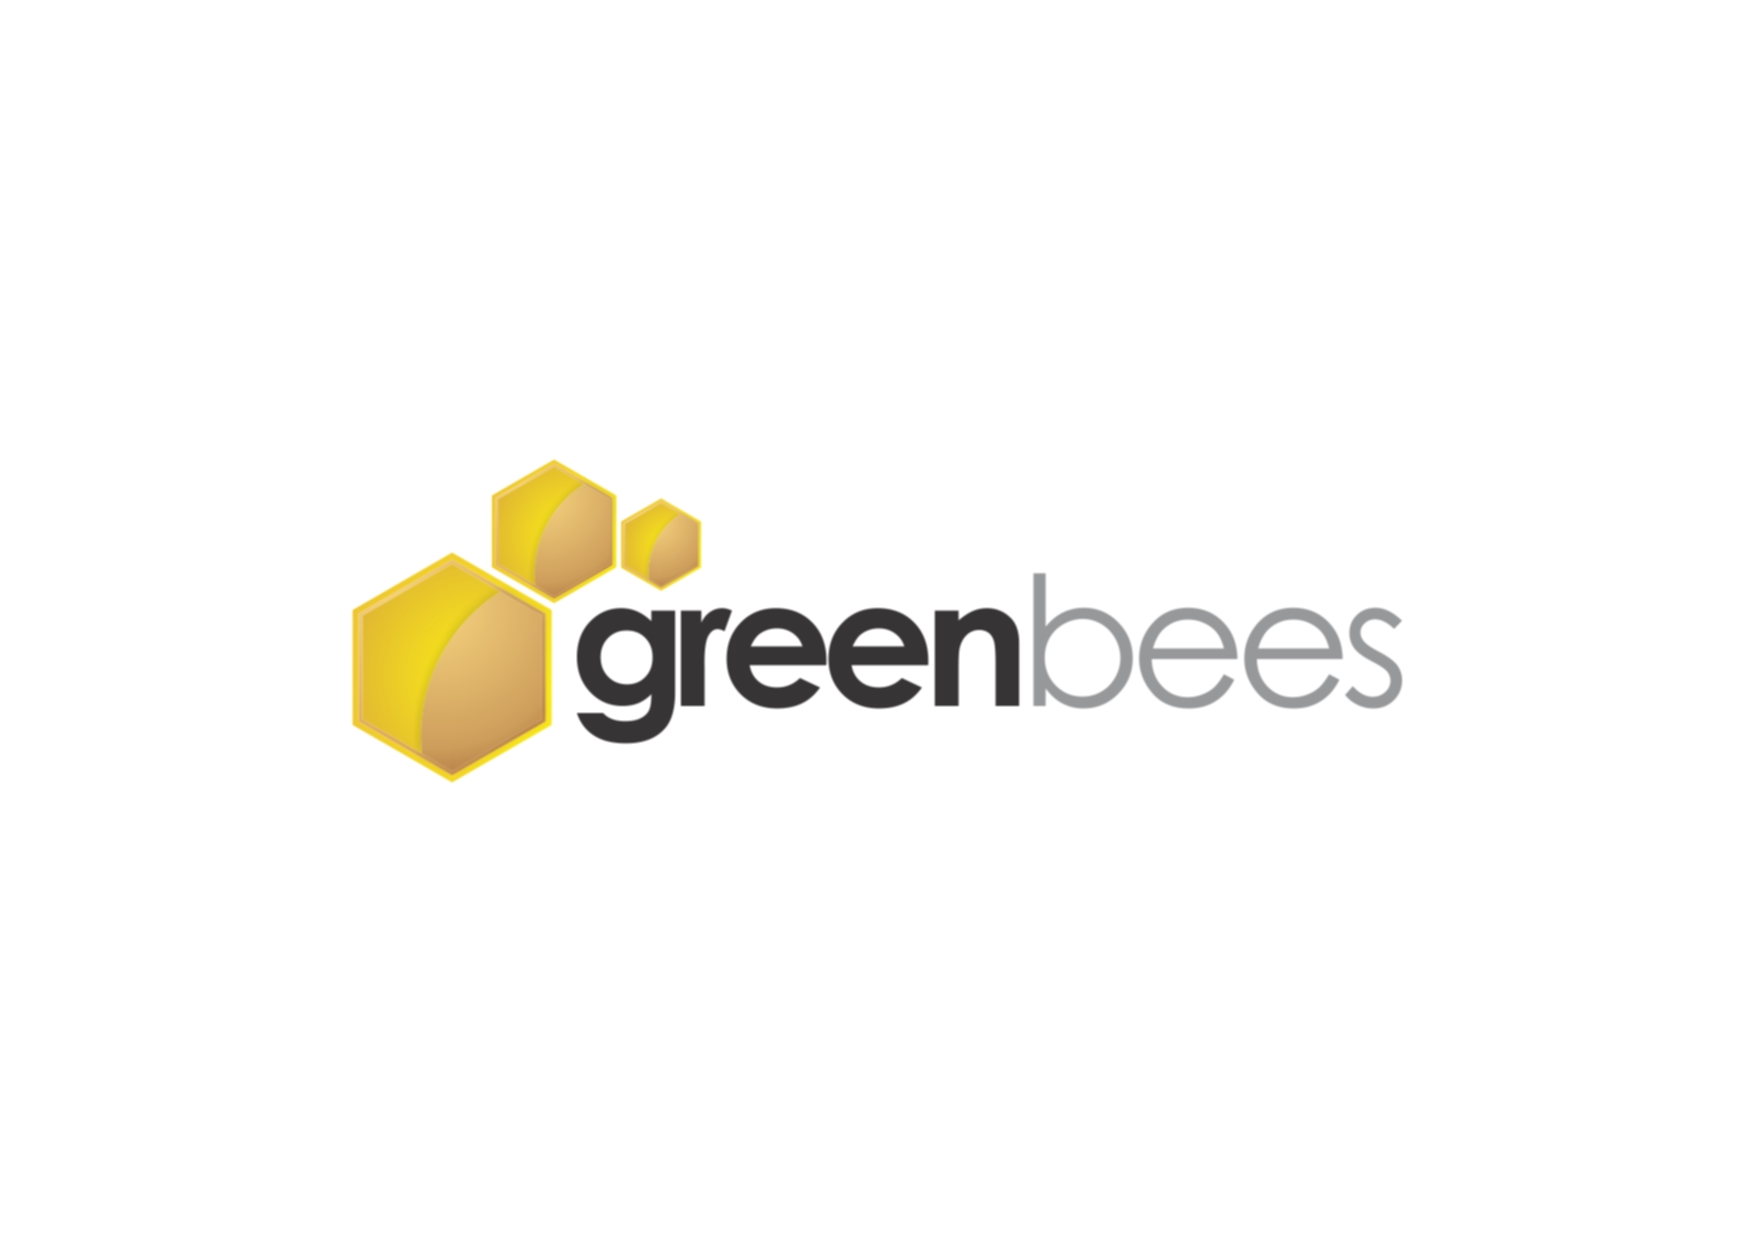 Logo Design by Private User - Entry No. 22 in the Logo Design Contest Greenbees Logo Design.